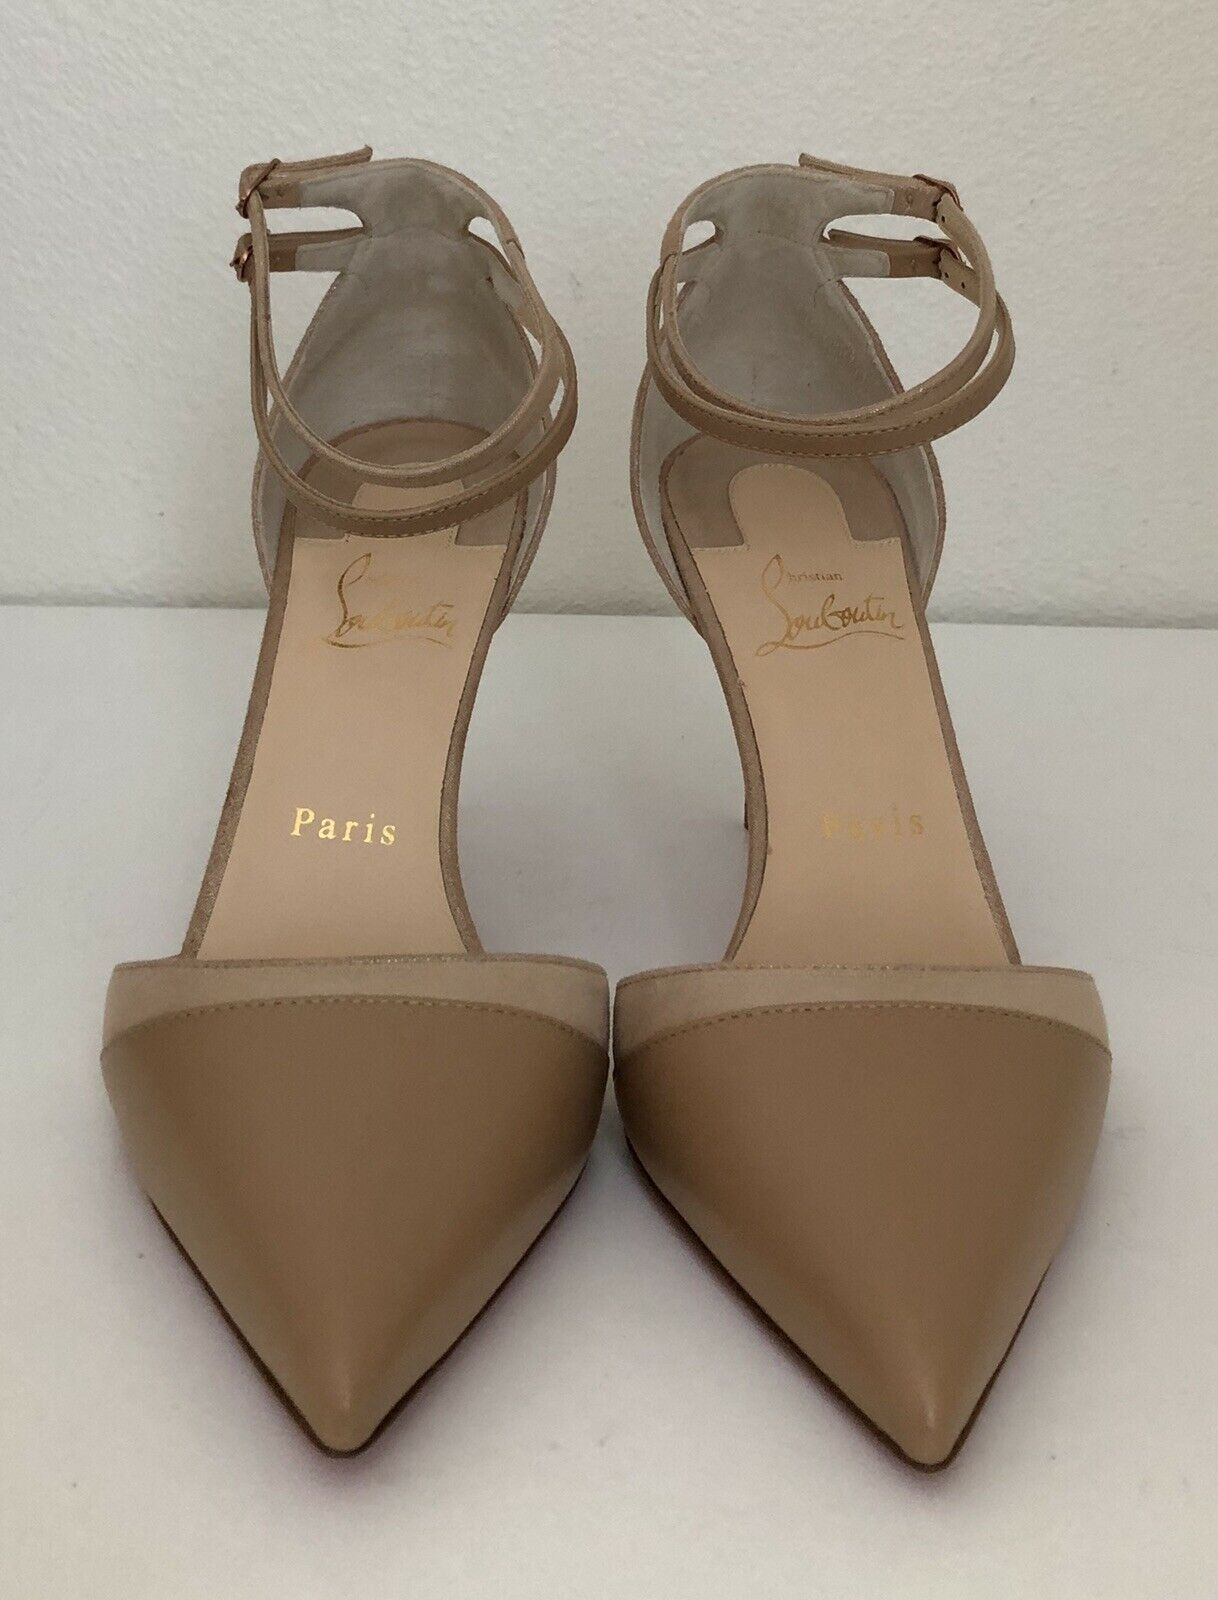 Christian Louboutin Louboutin Louboutin Uptown Double Nude Leather Pointed Toe Pump shoes 8.5   38.5 223aa4